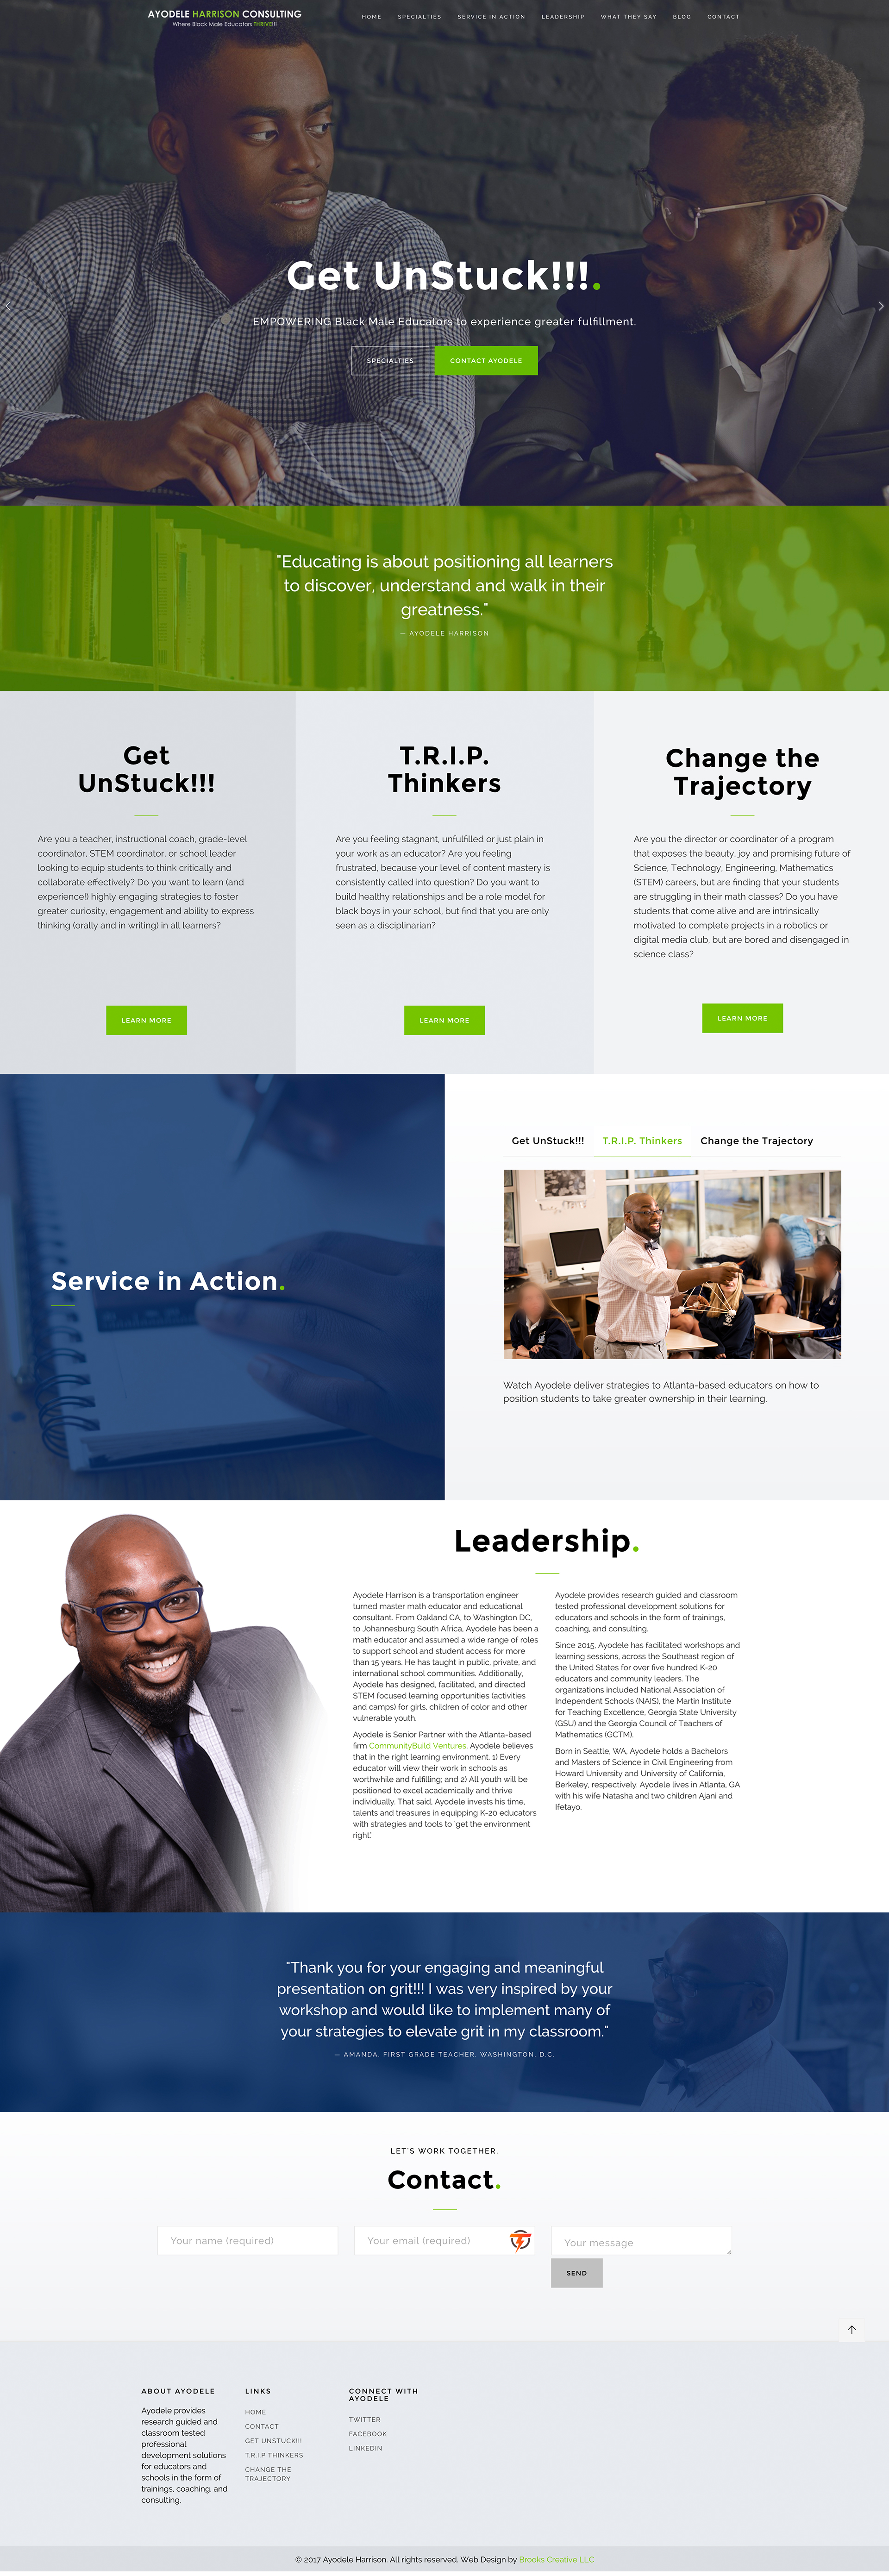 ayodele-harrison-website-layout